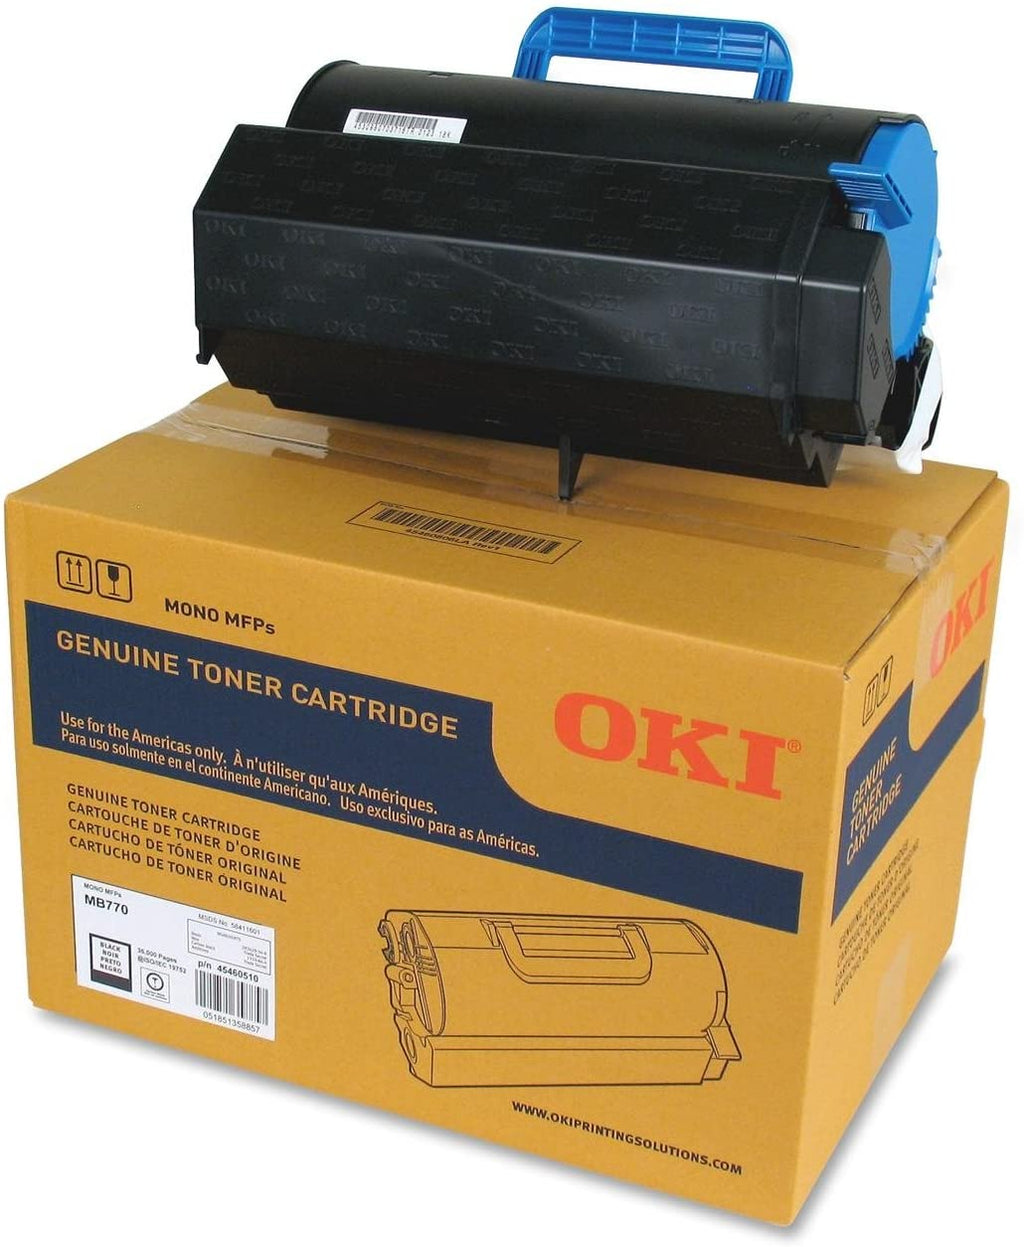 Oki-Okidata 45460510 Black Extra High Yield Laser Toner Cartridge (Genuine)